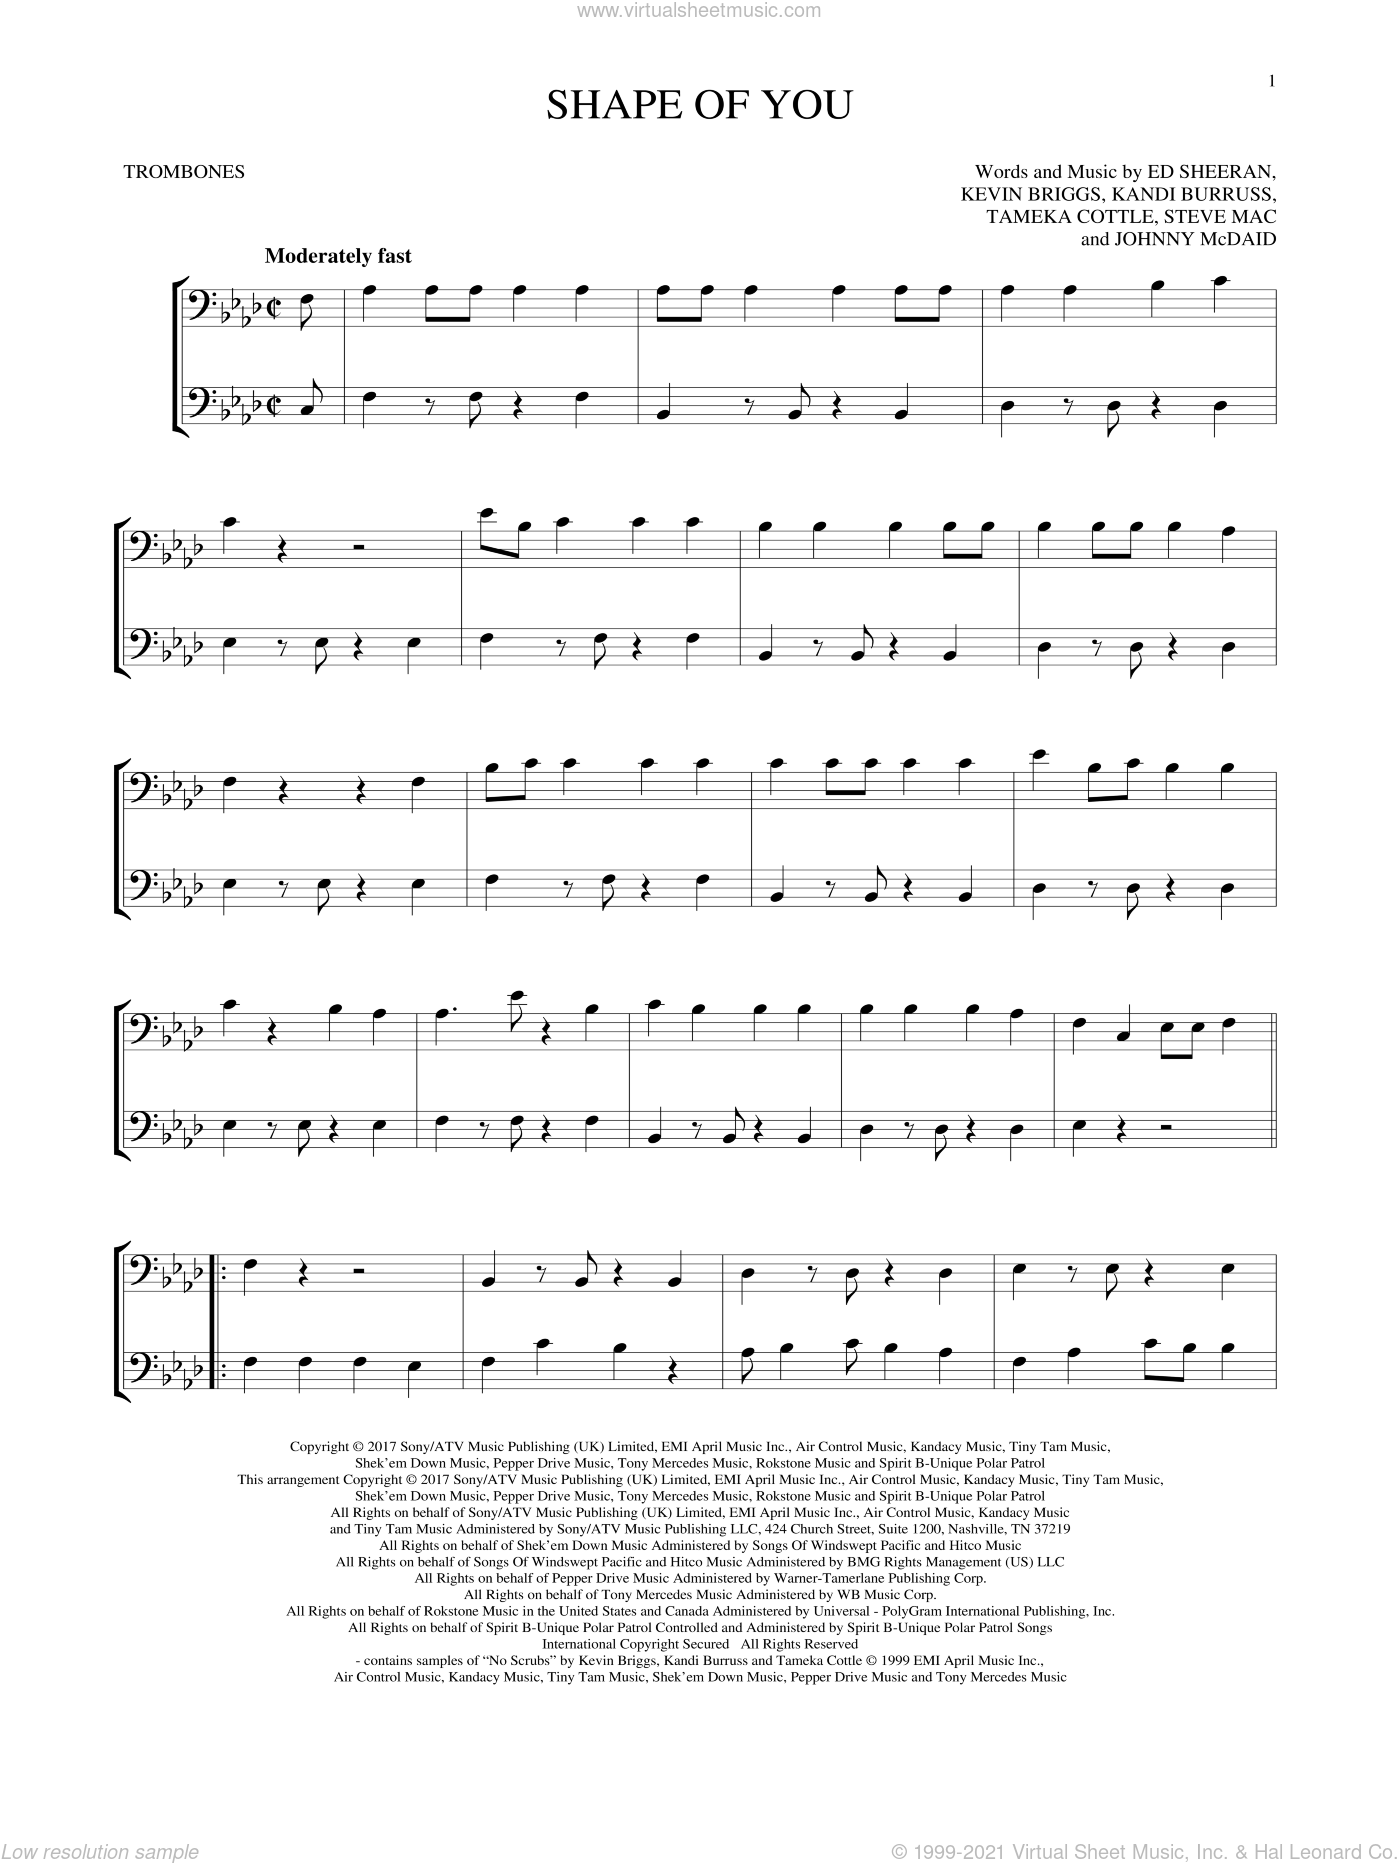 Shape Of You sheet music for two trombones (duet, duets) by Ed Sheeran, Johnny McDaid, Kandi Burruss, Kevin Briggs, Steve Mac and Tameka Cottle, intermediate skill level